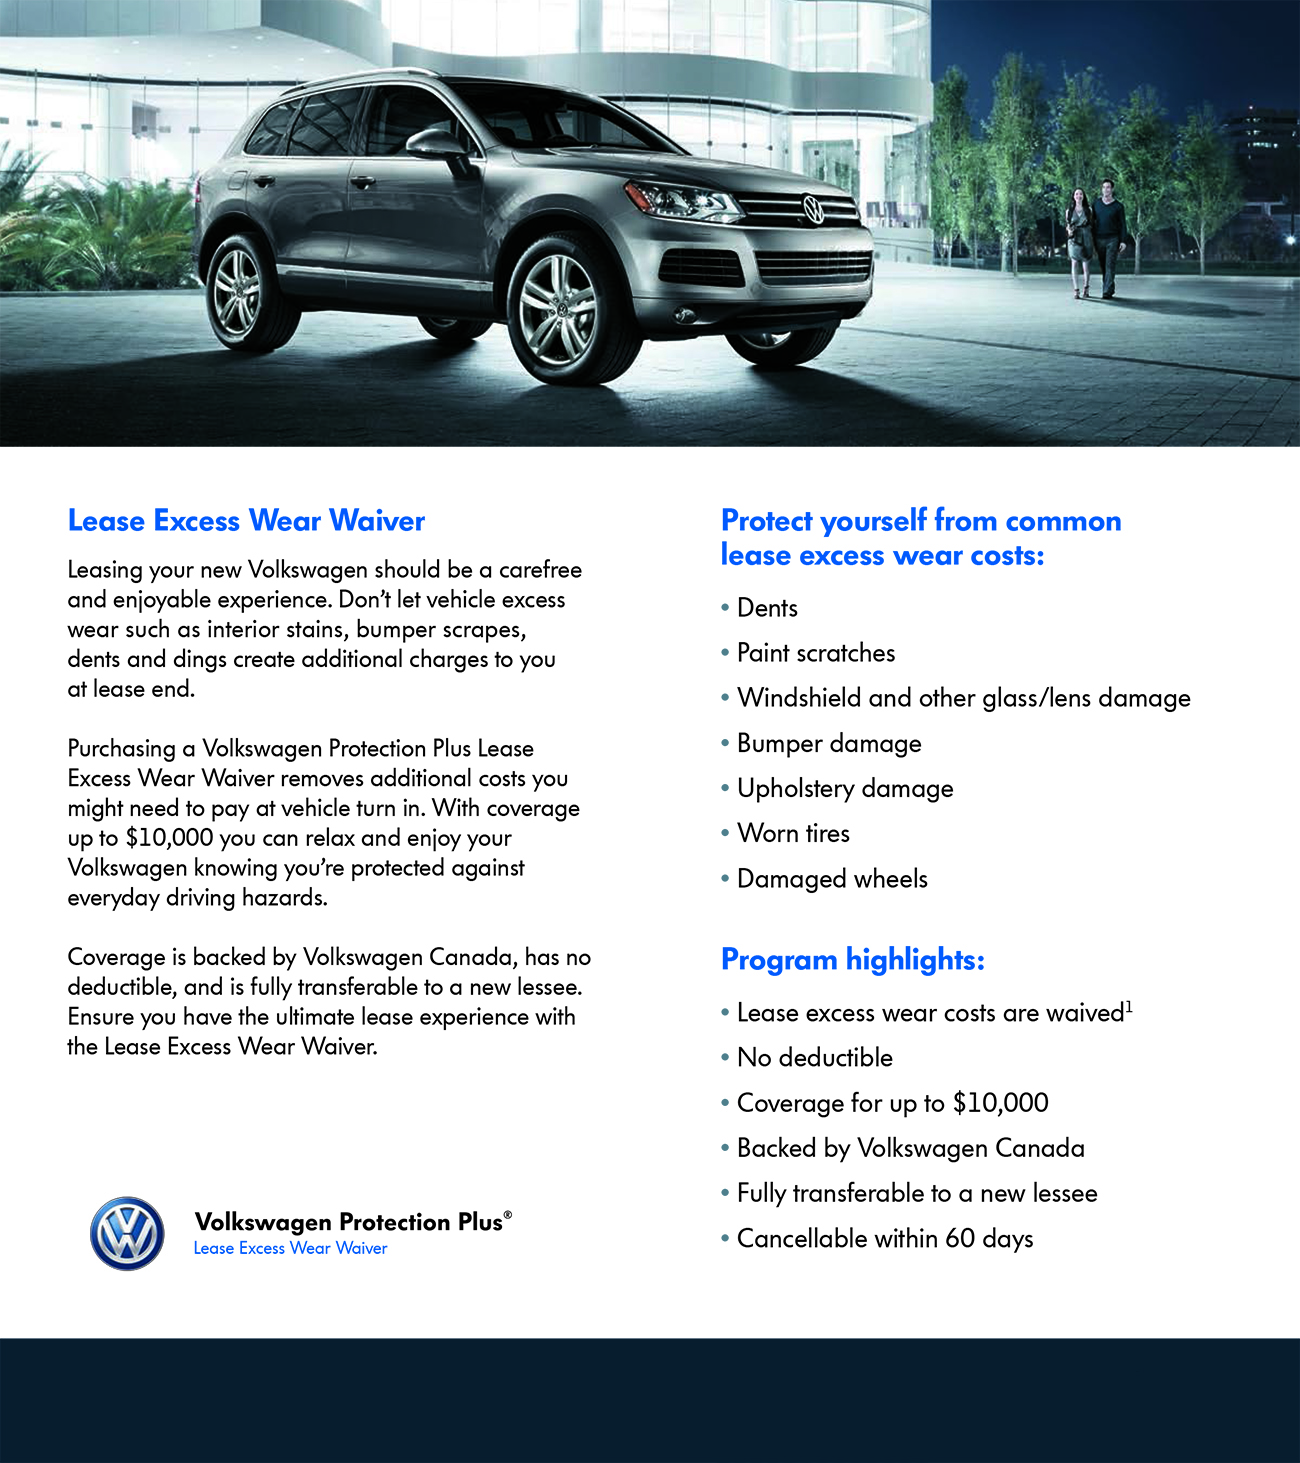 Volkswagen Protection Plus Lease Excess Wear Waiver